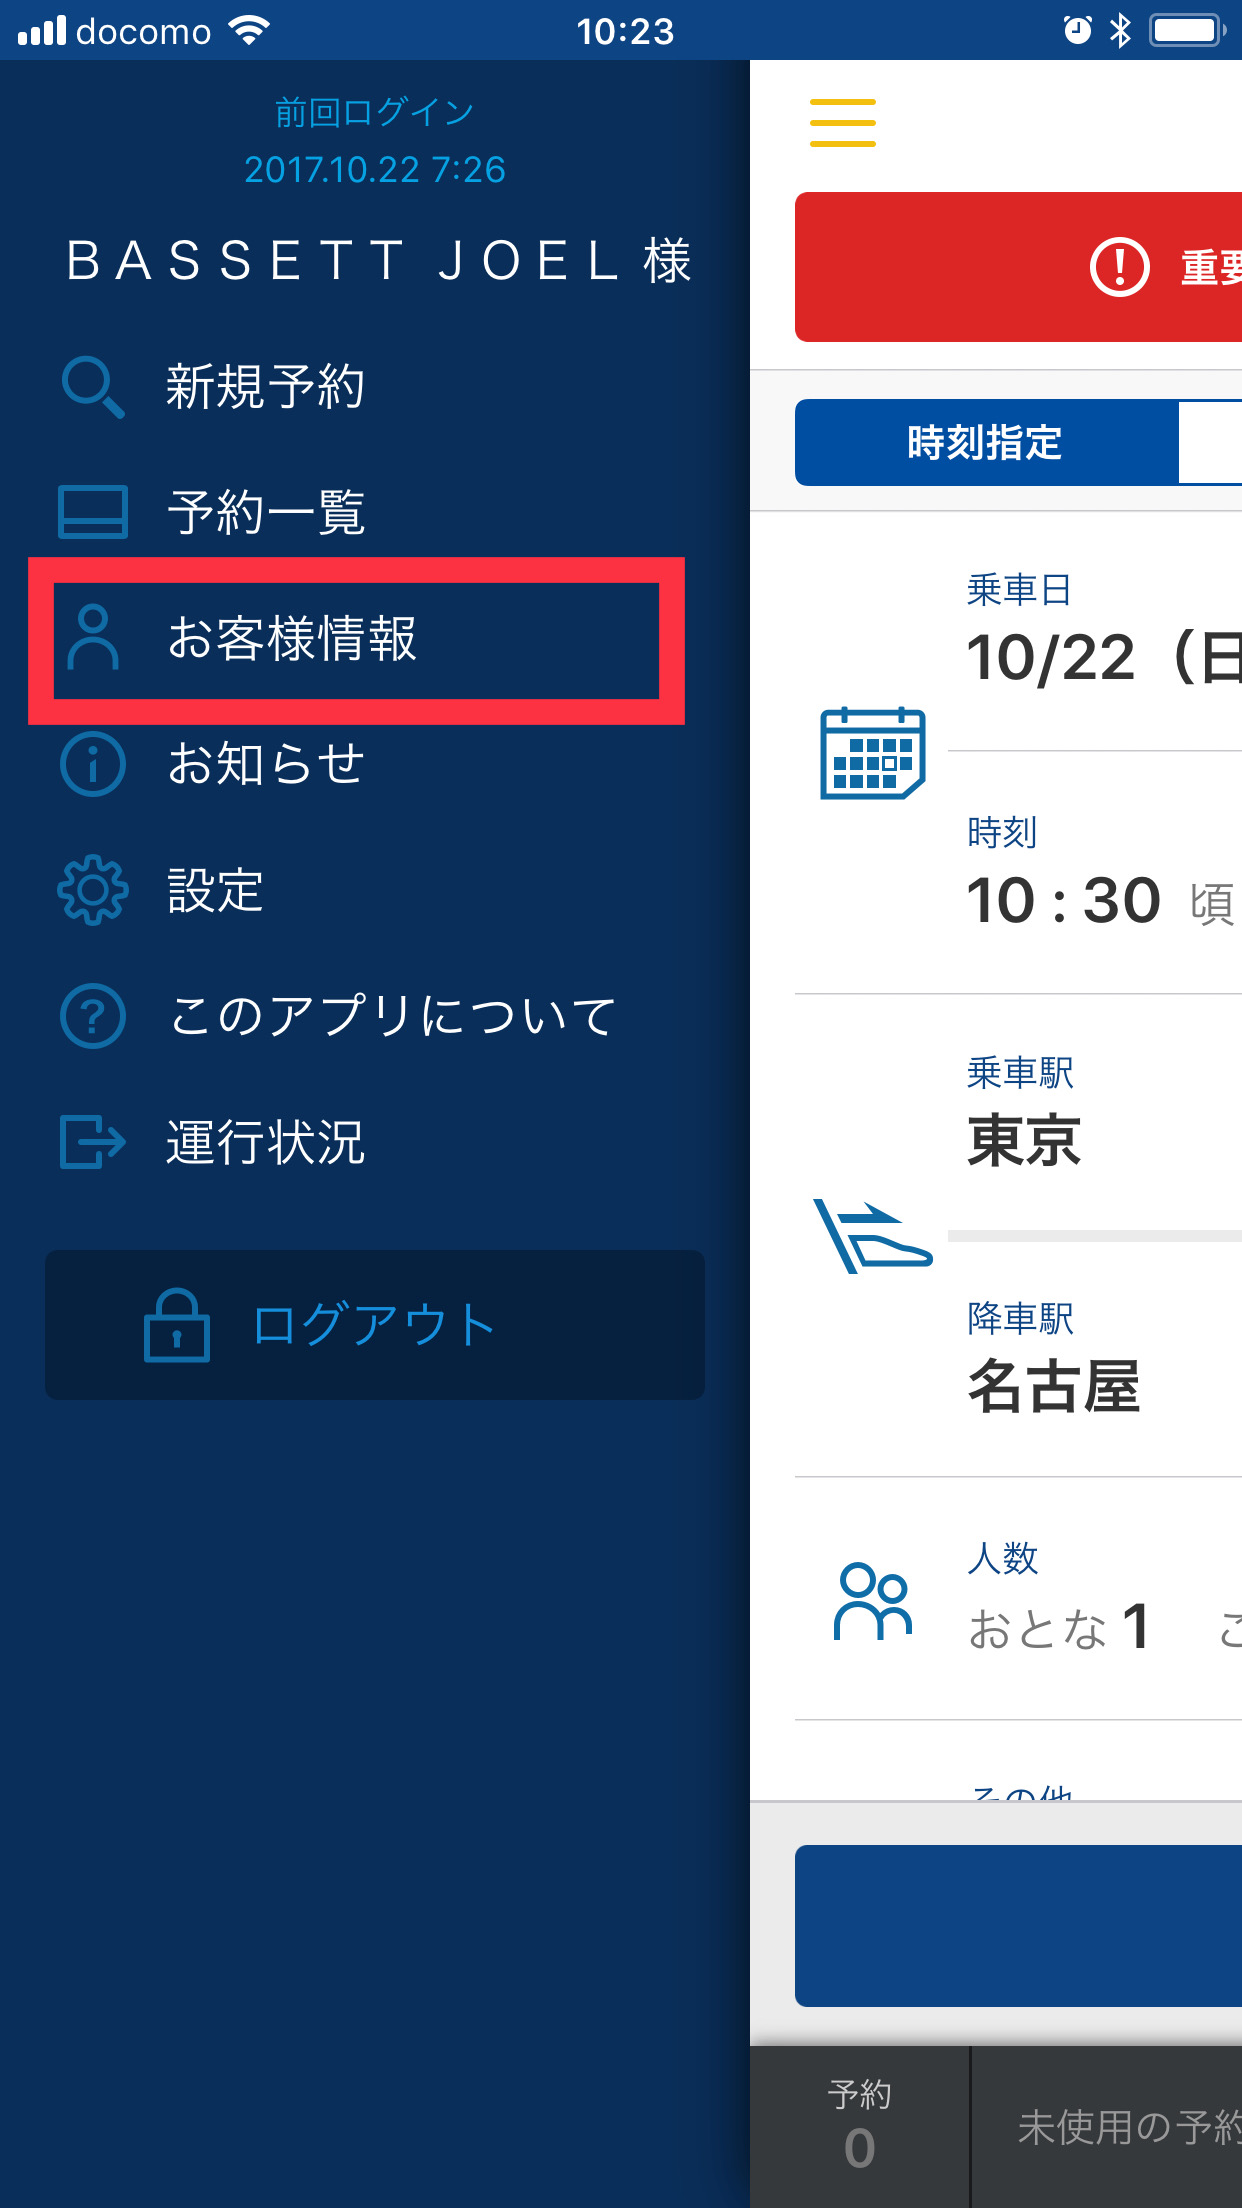 Tap Account Information